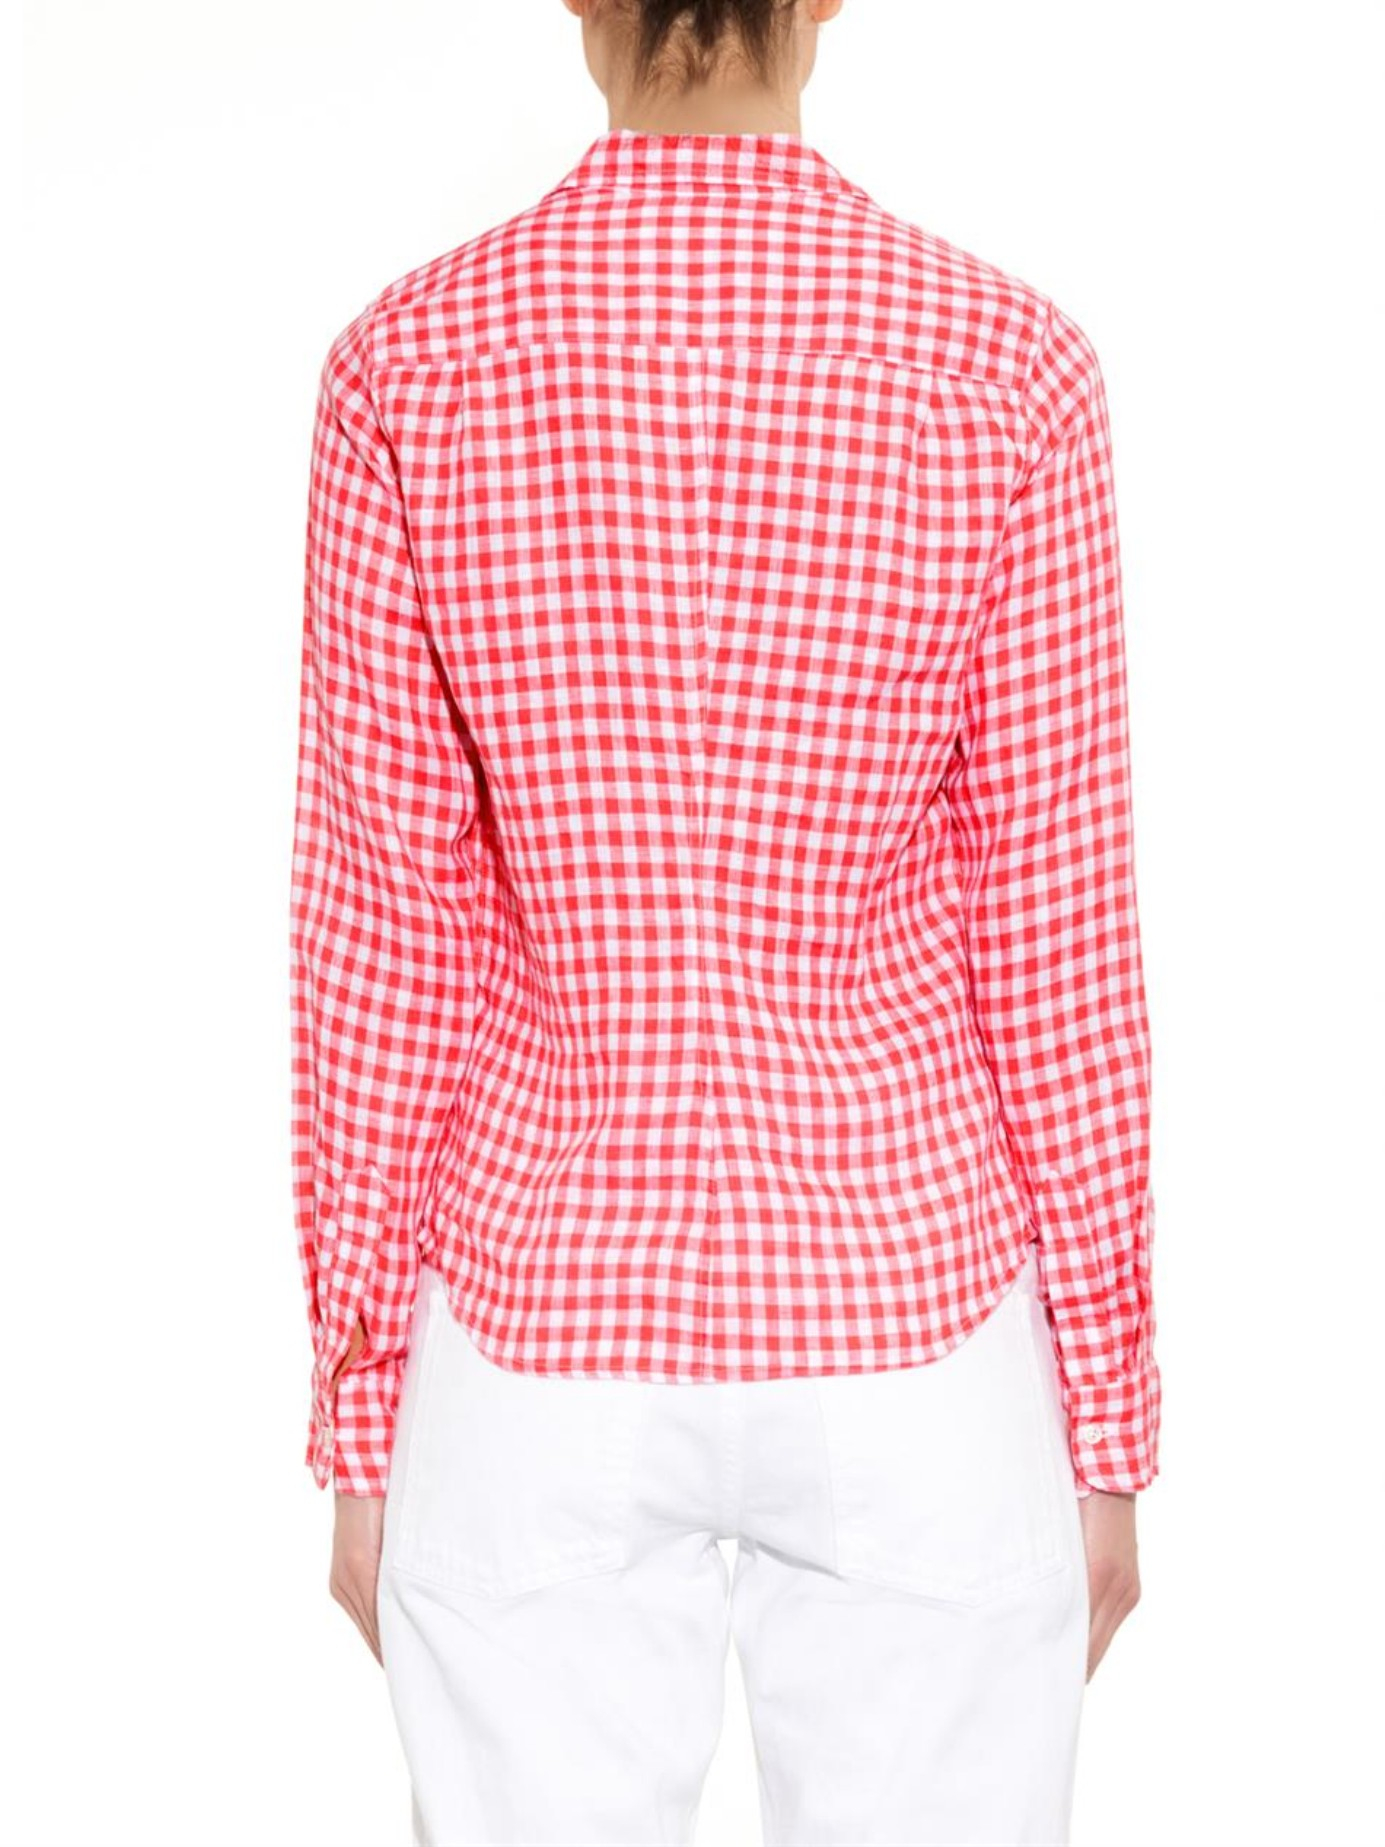 Frank eileen barry gingham linen shirt in pink lyst for Red and white gingham shirt women s